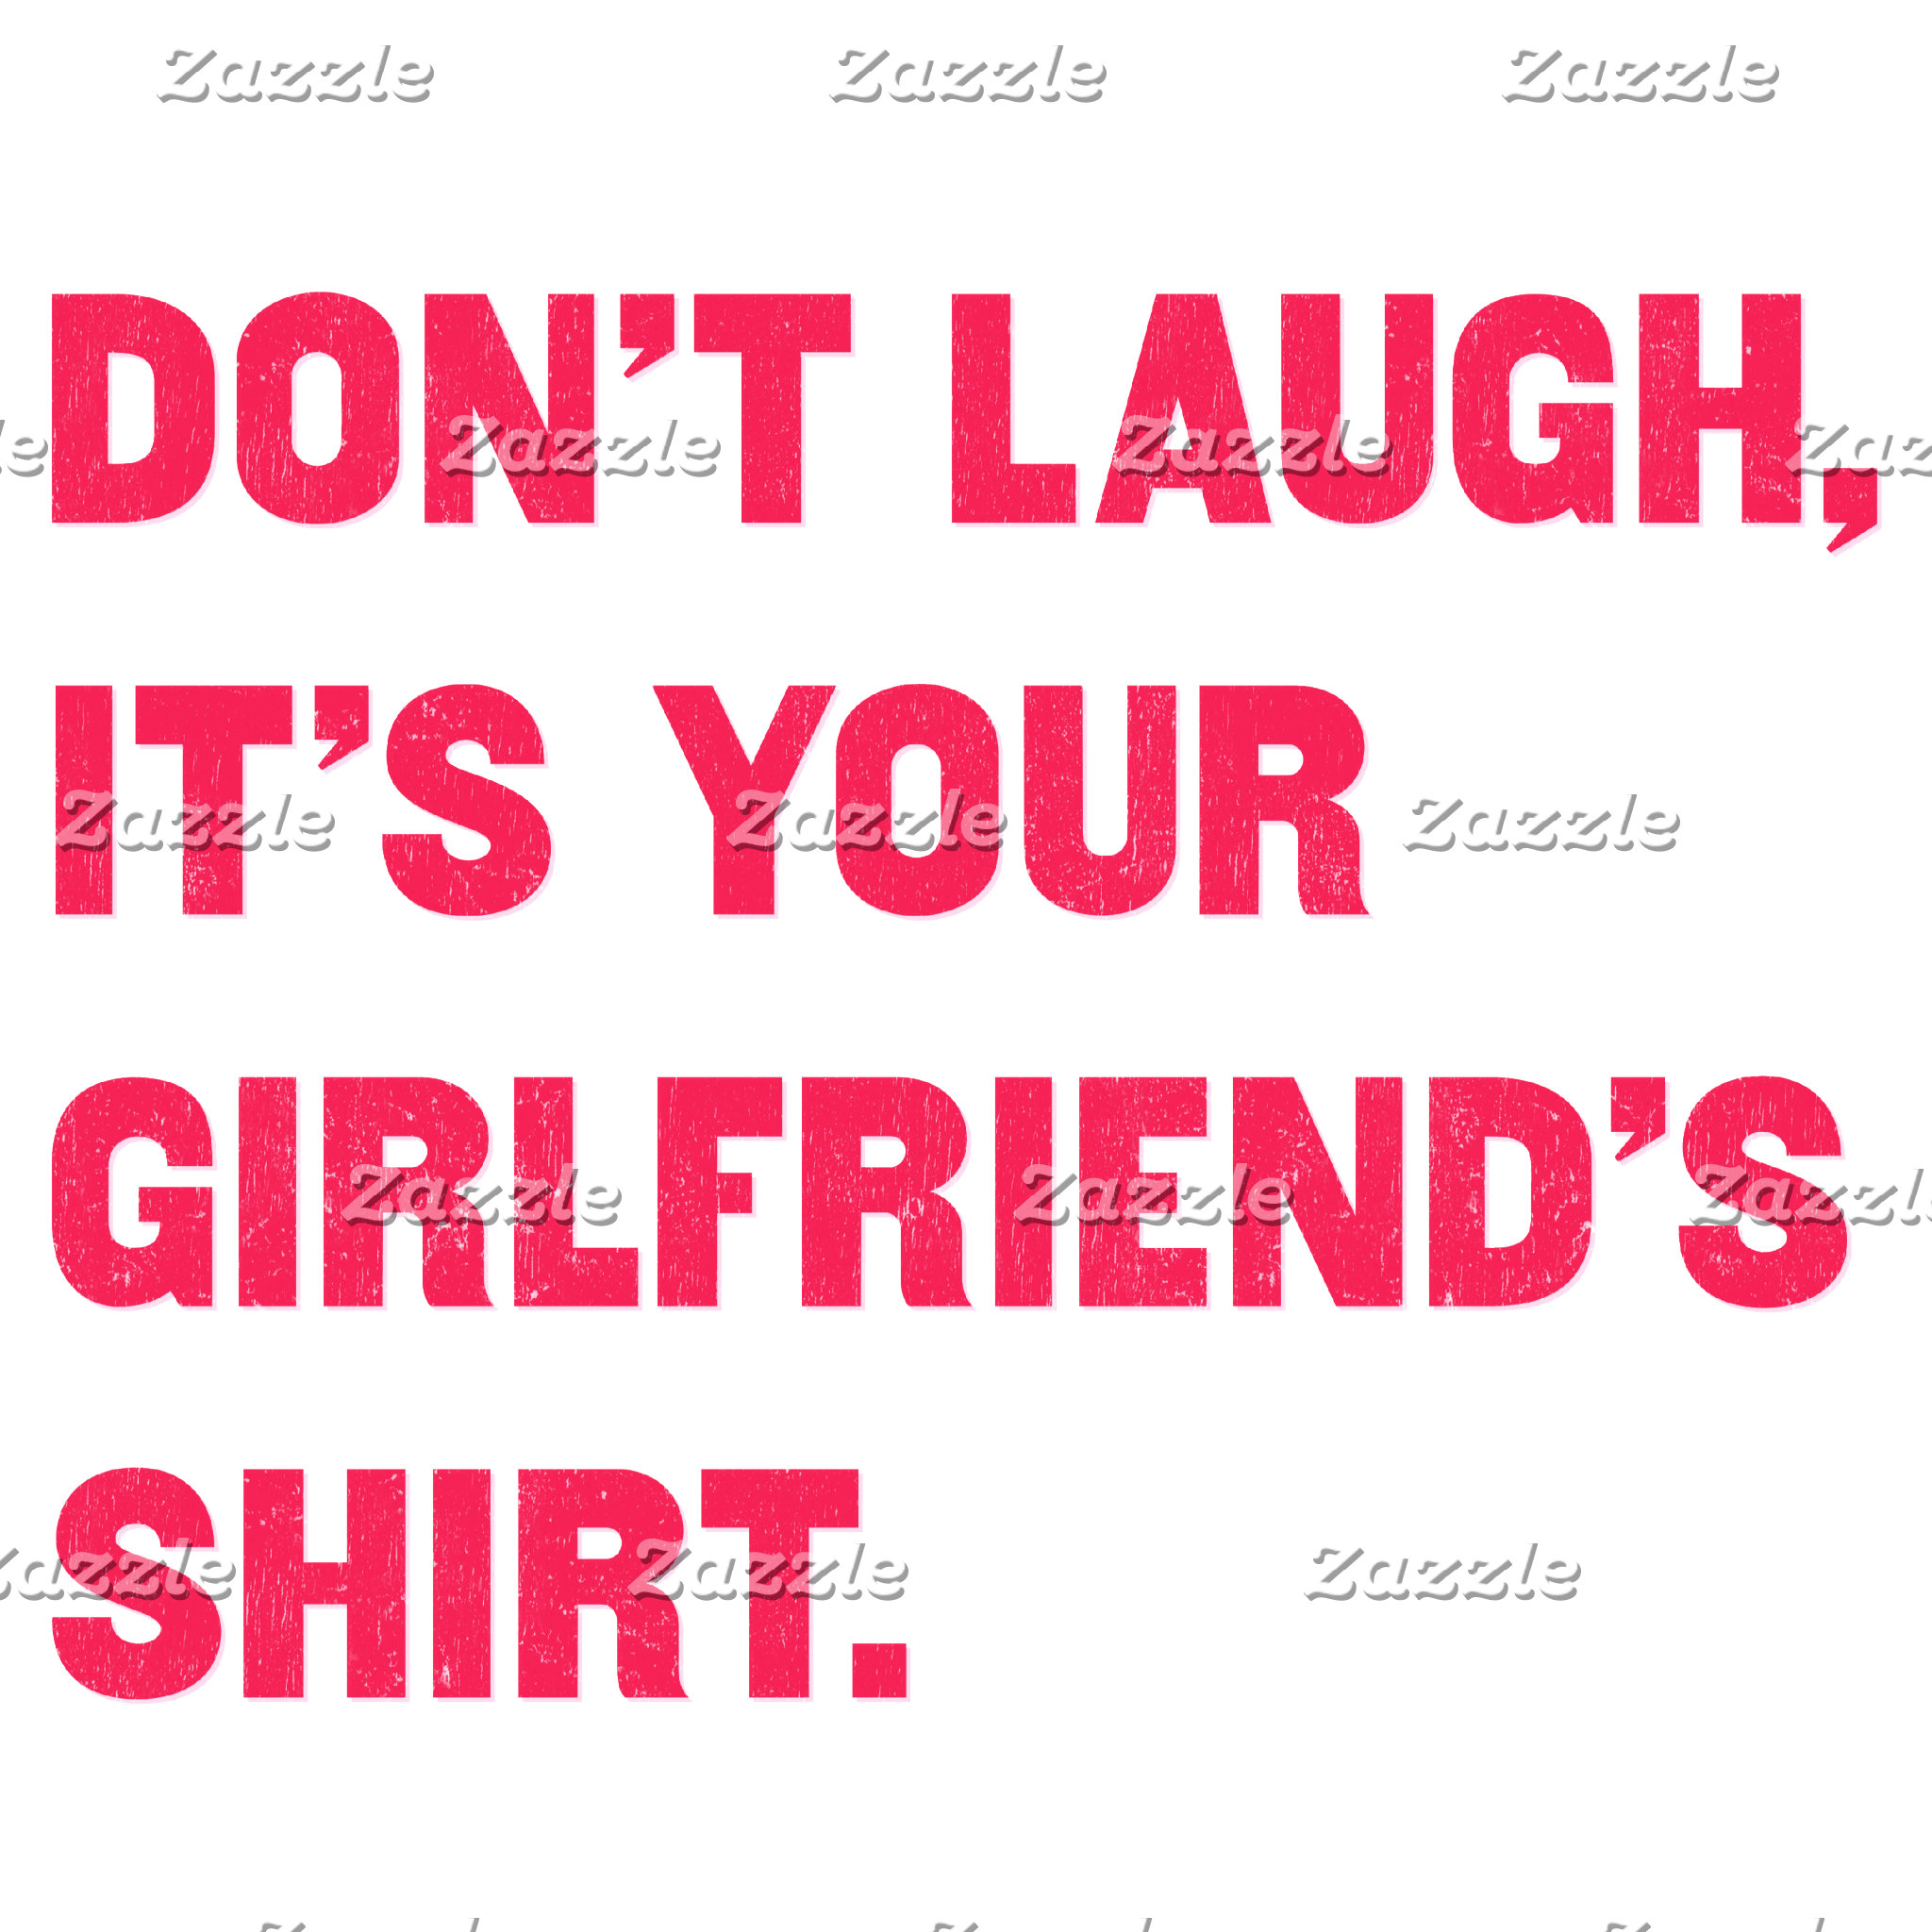 Don't laugh, it's your girlfriend's shirt.